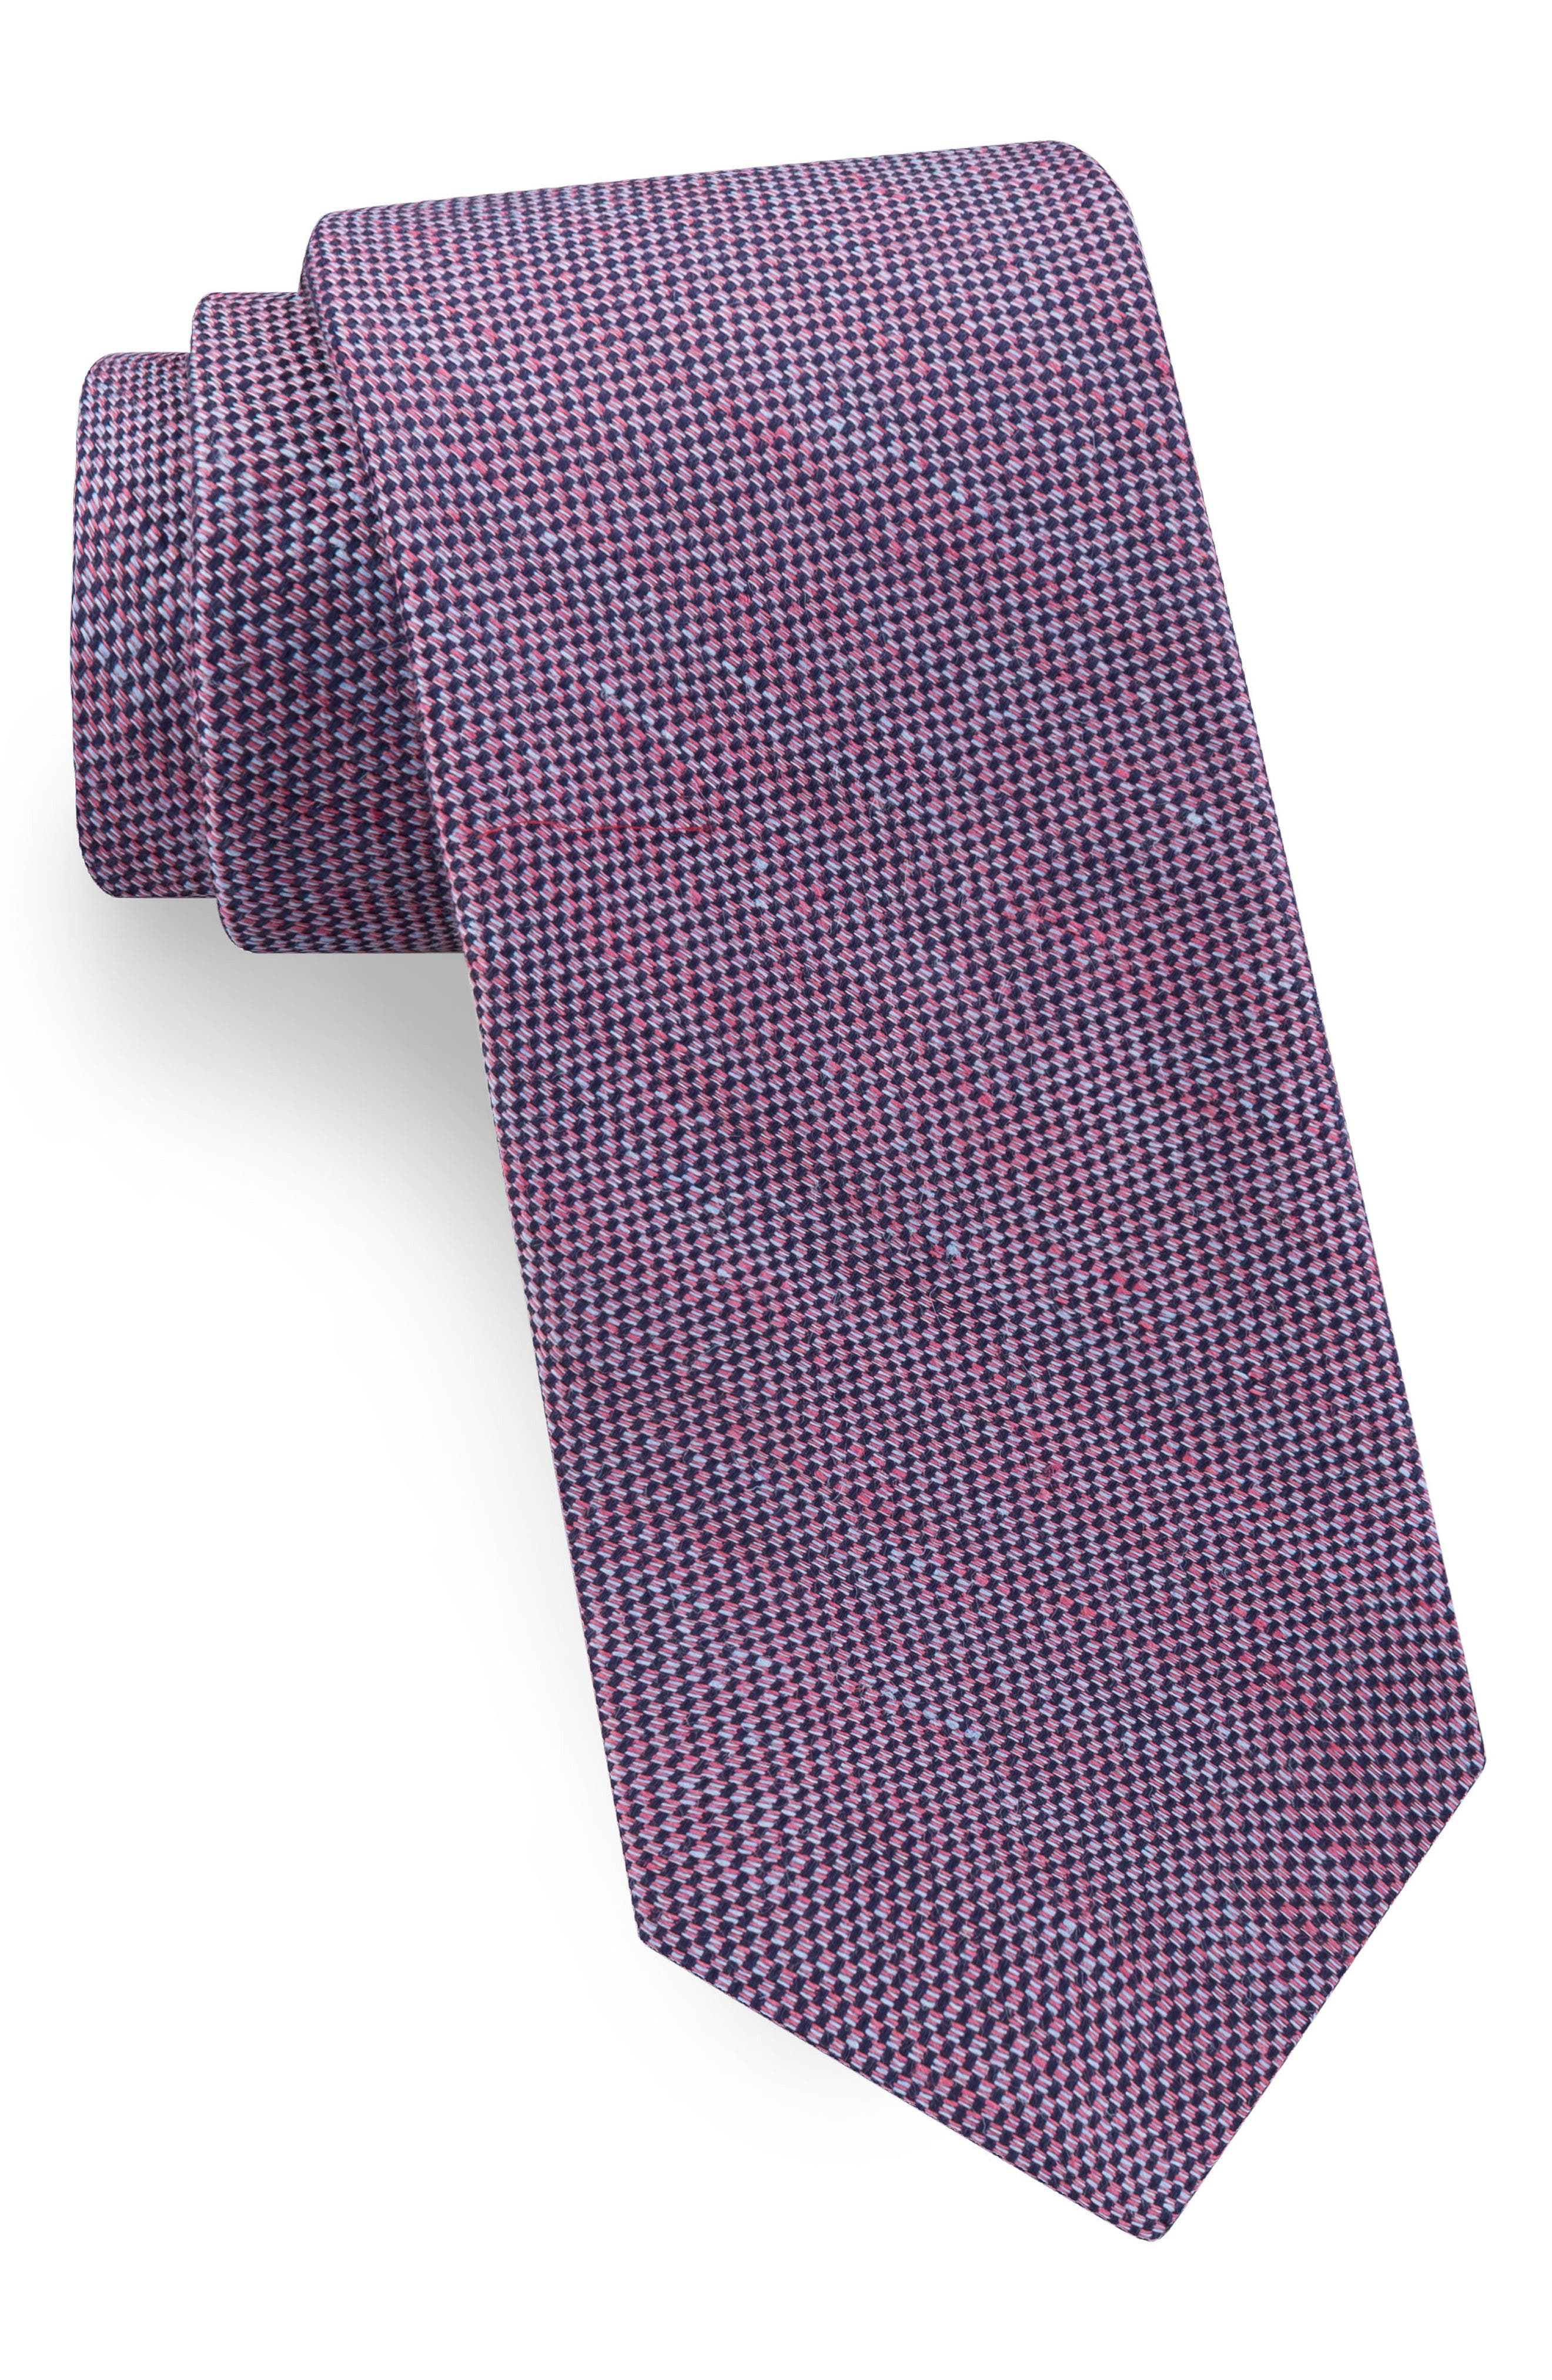 TED BAKER LONDON Textured Linen & Silk Tie